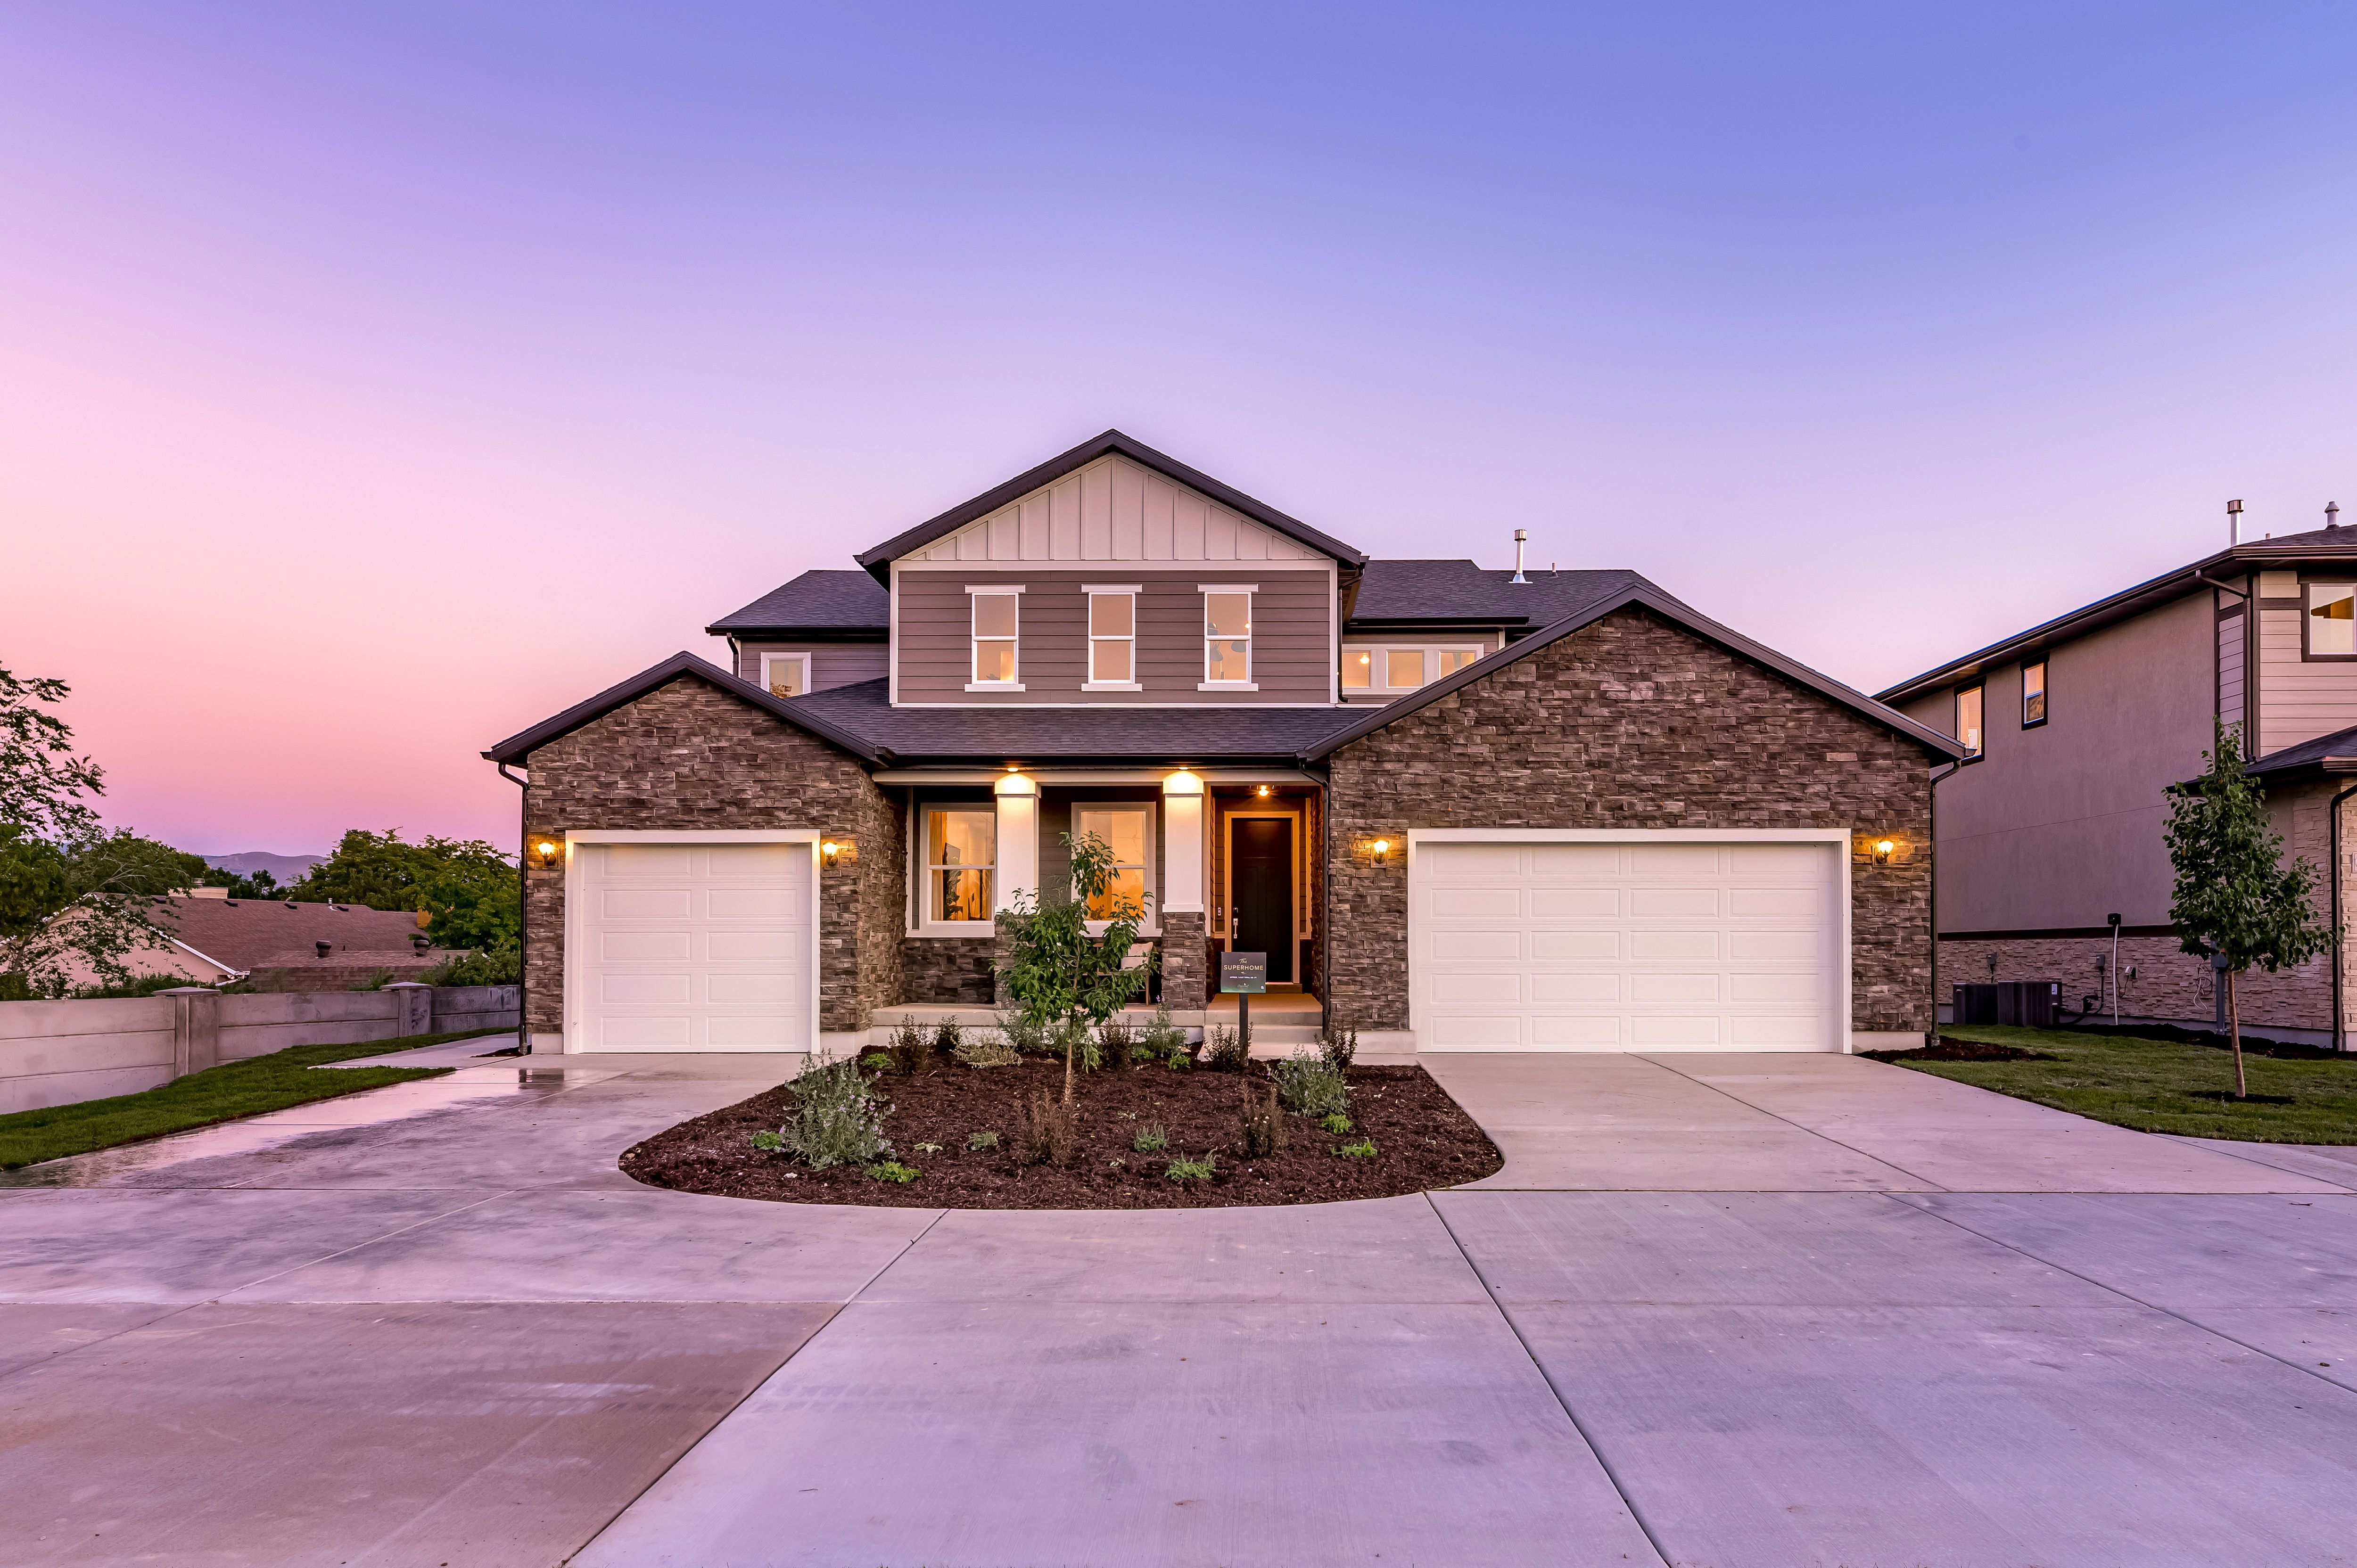 Superhome In 2021 New House Plans House Plans New Homes